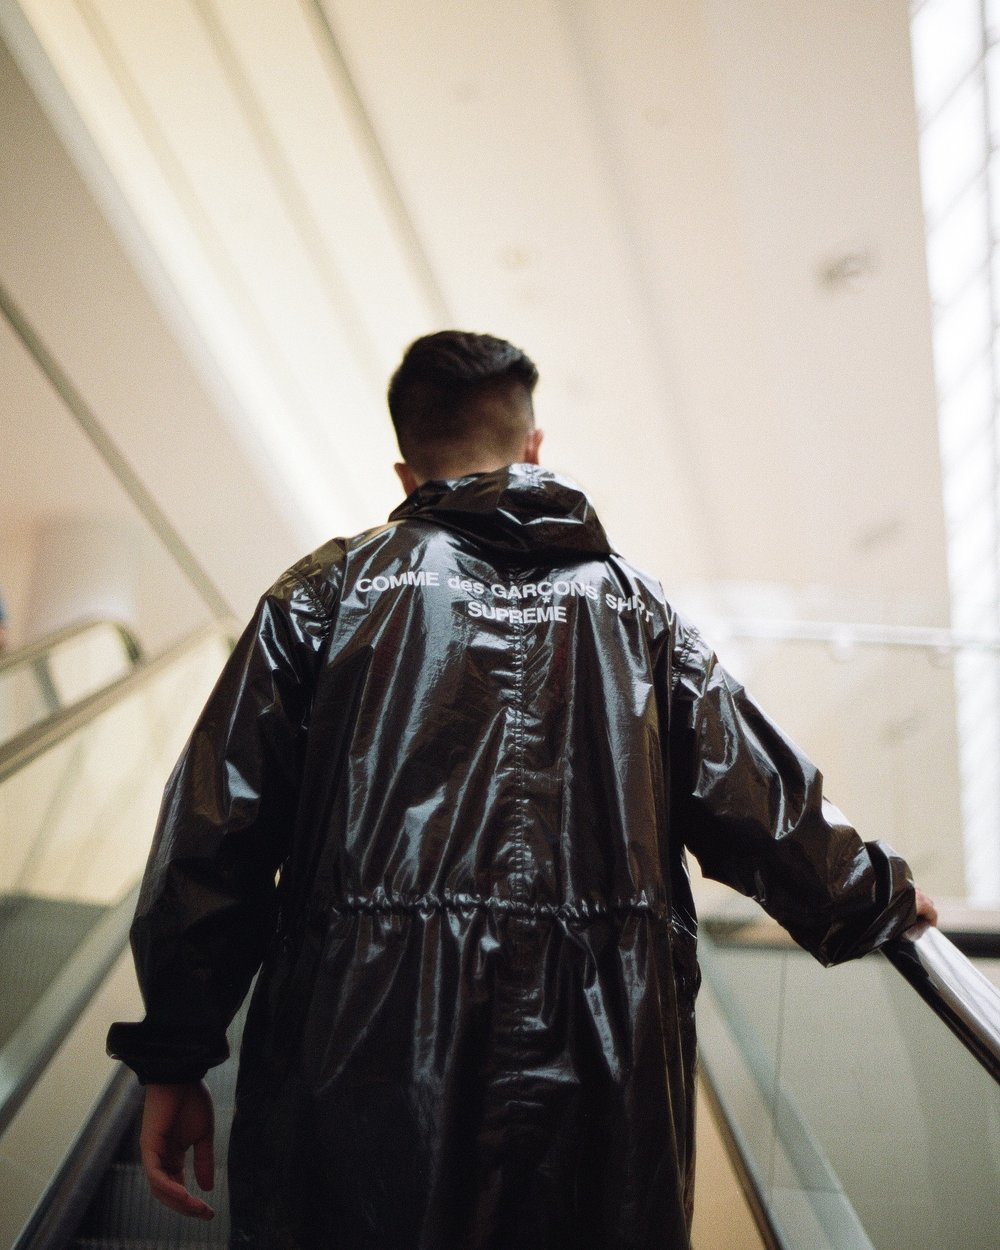 Koven Wei rocking a Comme Des Garcons and Supreme Fishtail Raincoat